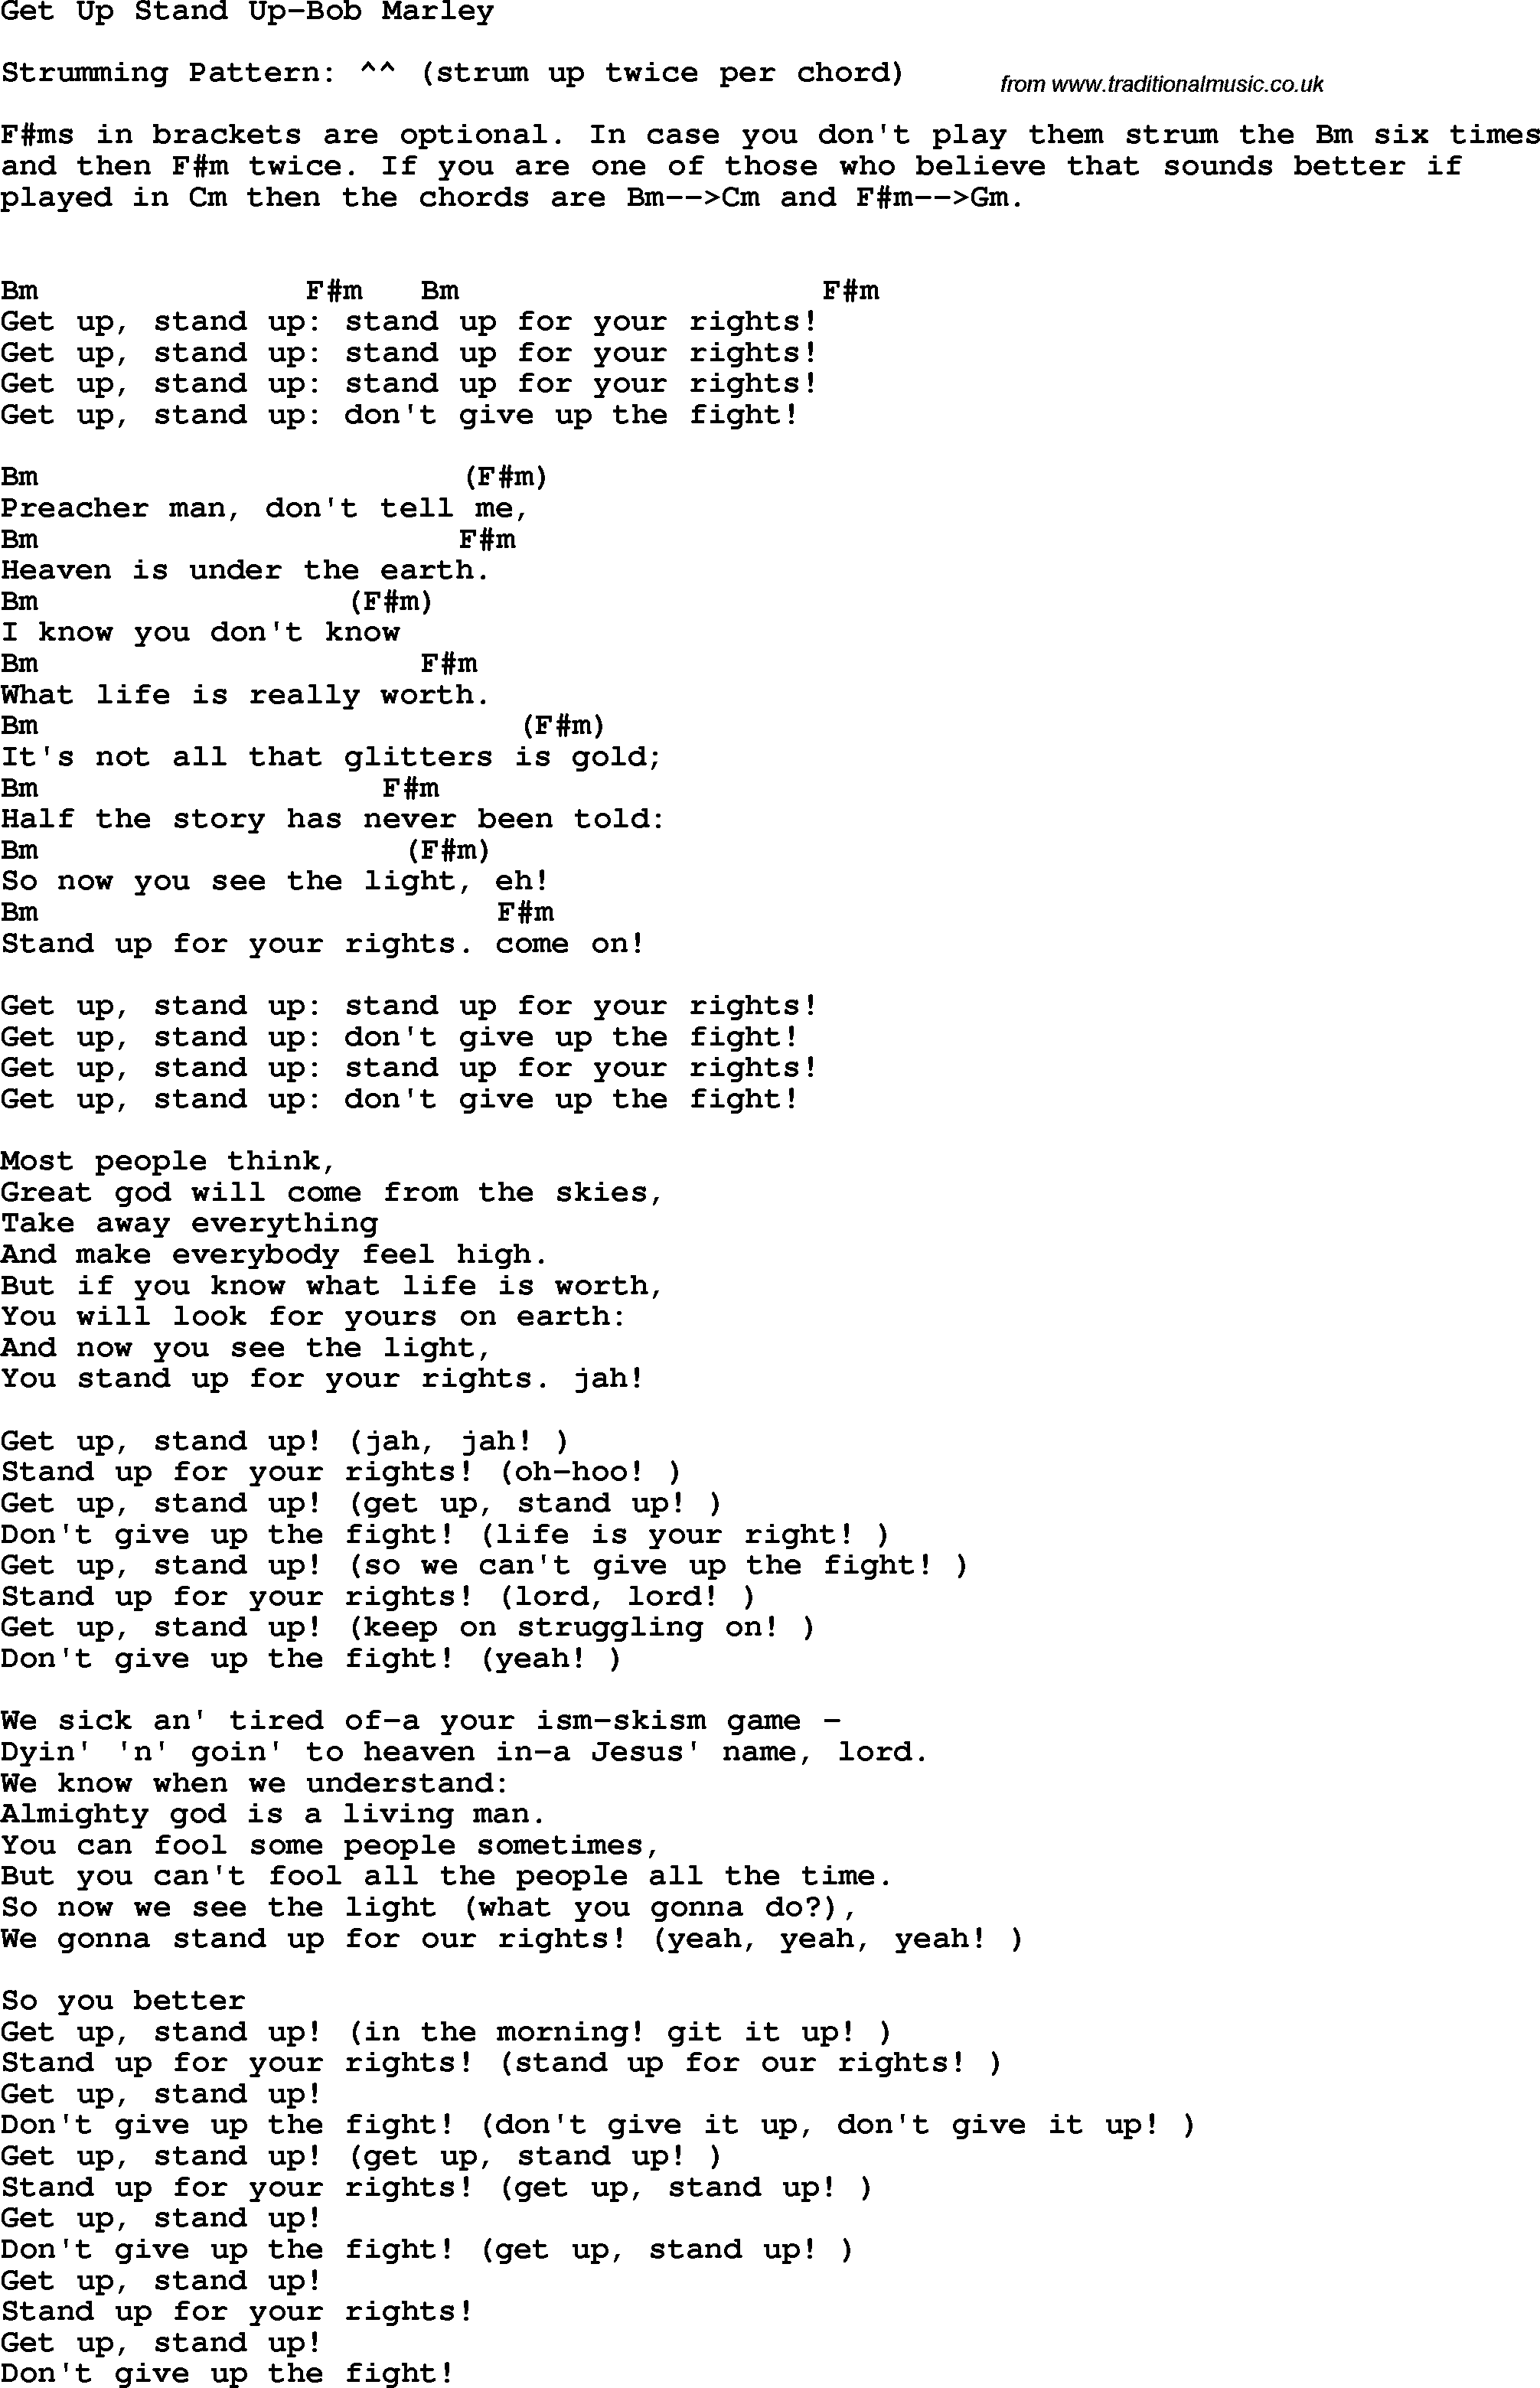 Protest Song Get Up Stand Up Bob Marley Lyrics And Chords